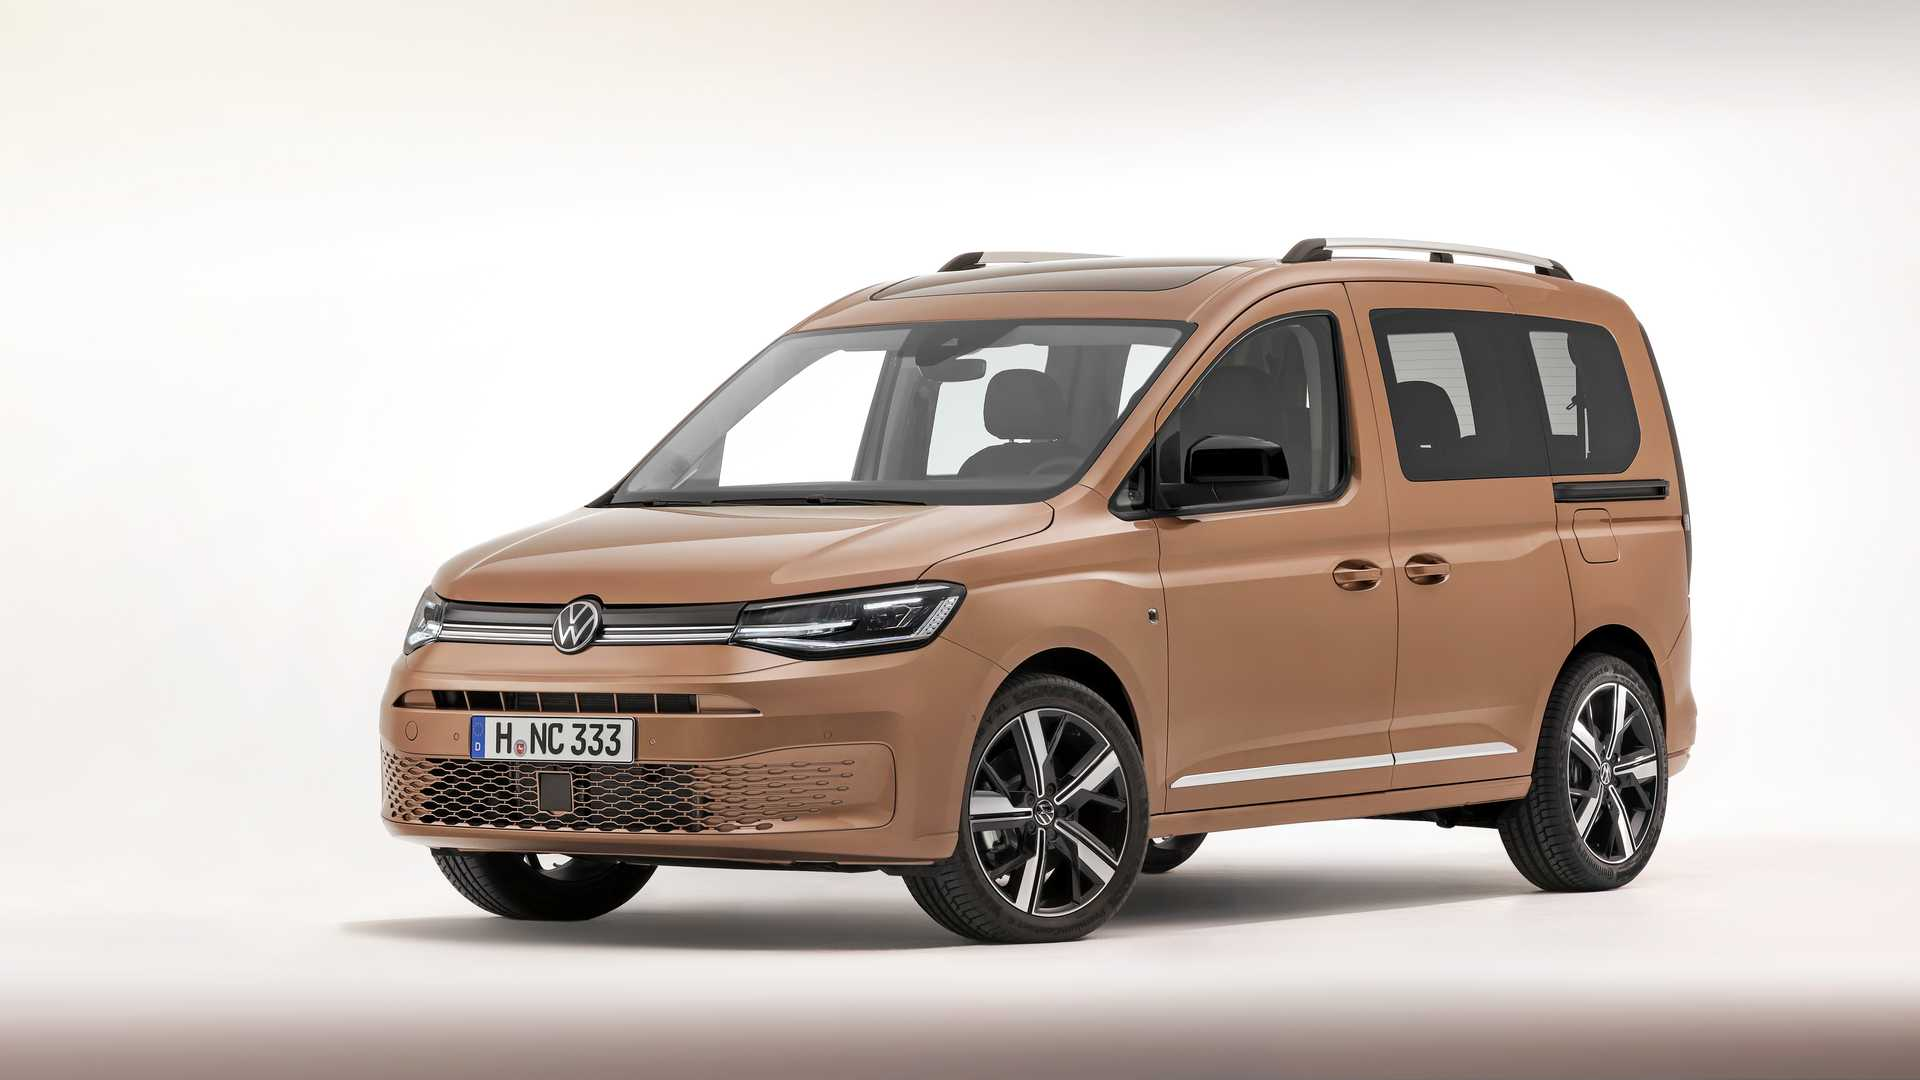 VW Caddy (2020): Auf den Spuren des Golf 8 (Update)